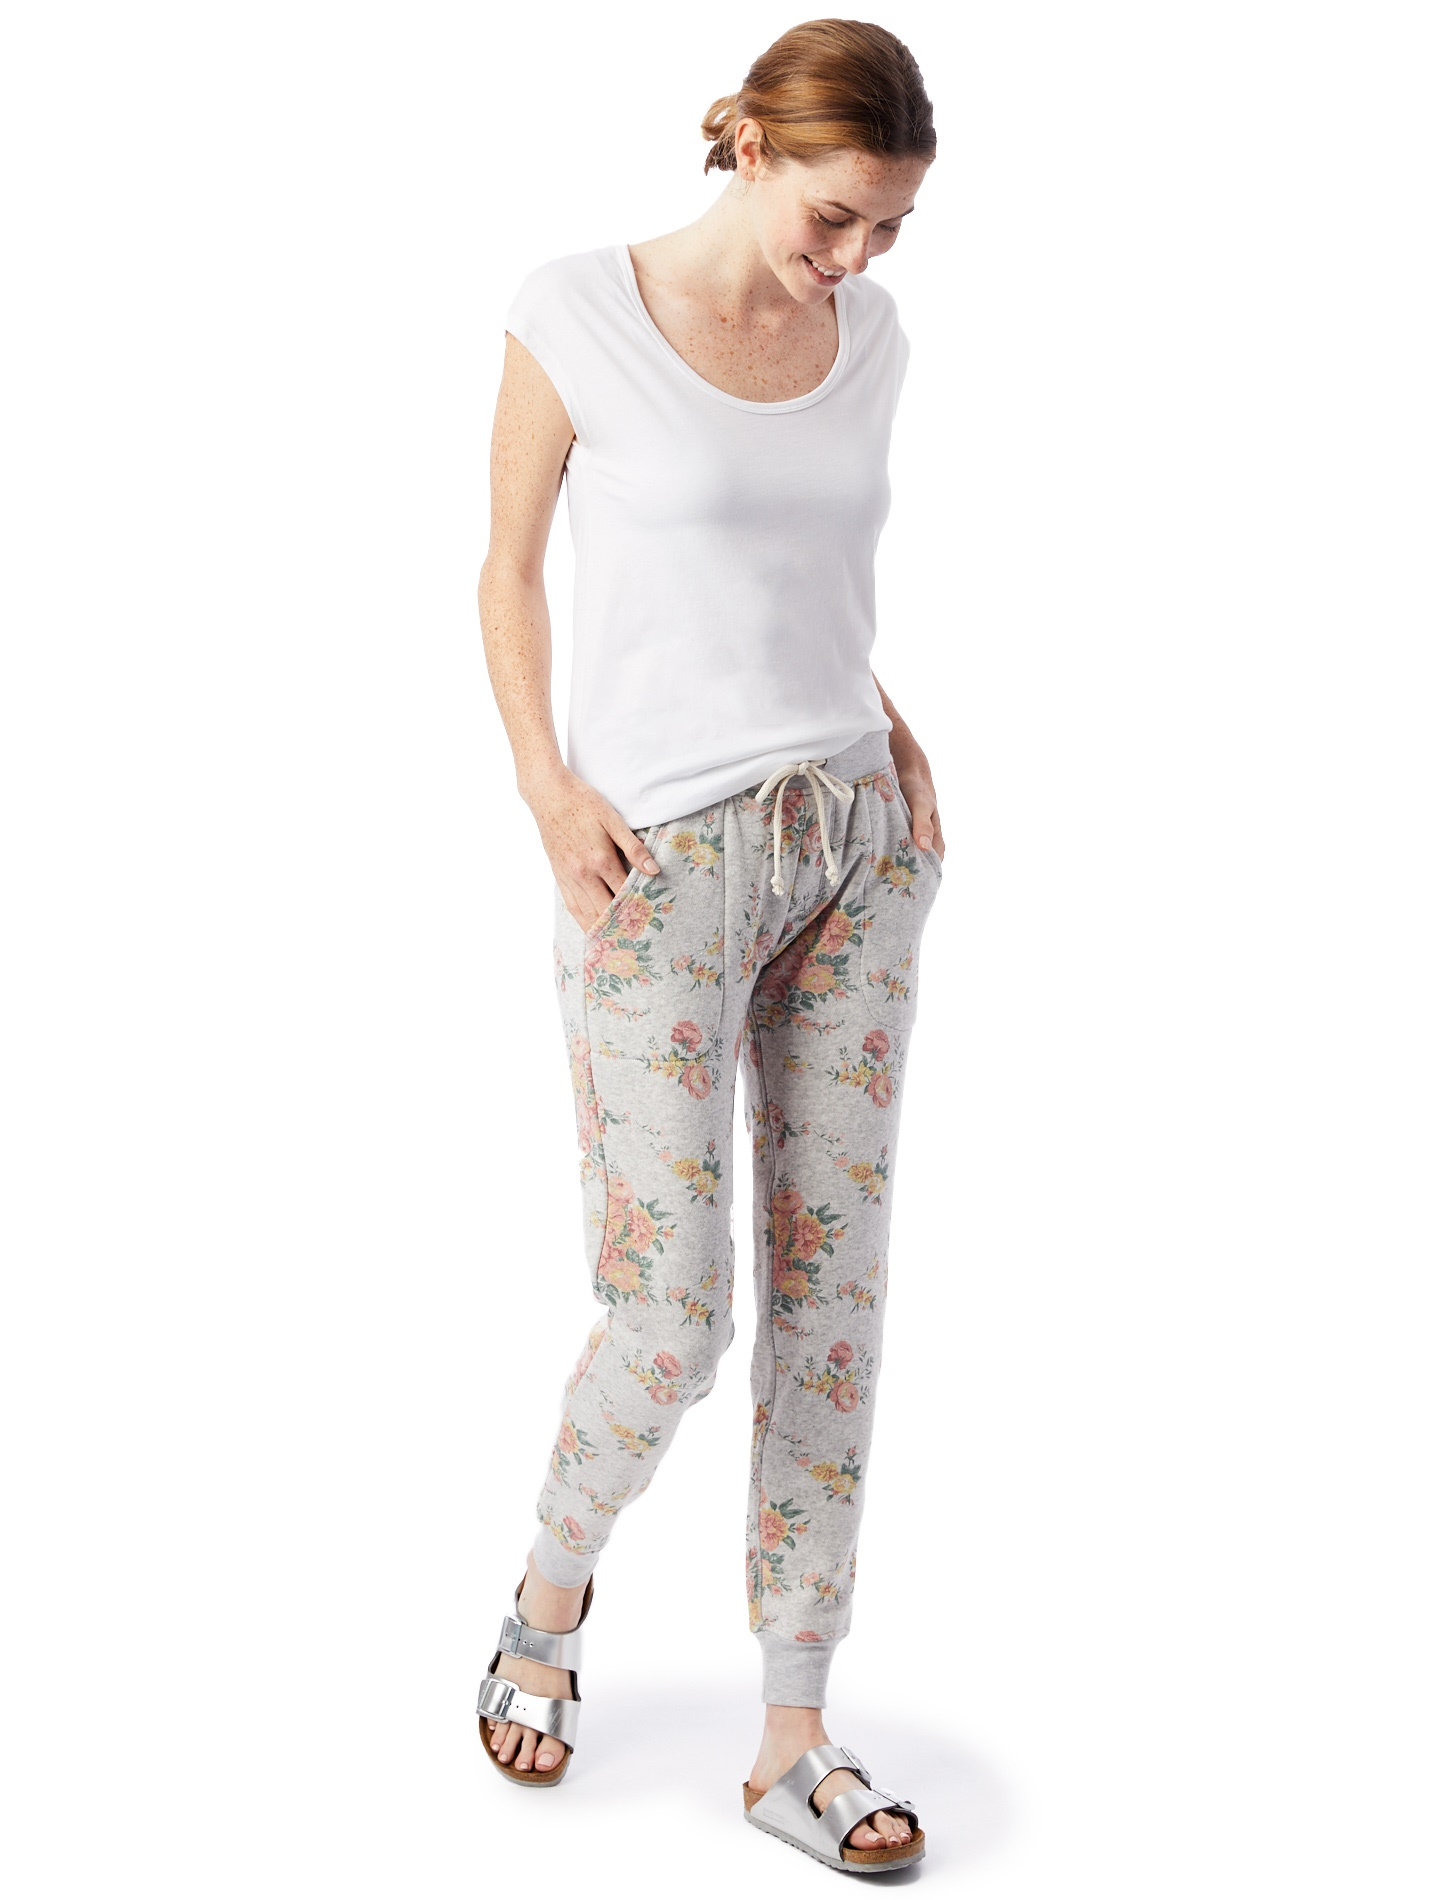 Printed Eco-Fleece Jogger Pants in Eco Light Grey Country Floral (2).jpg